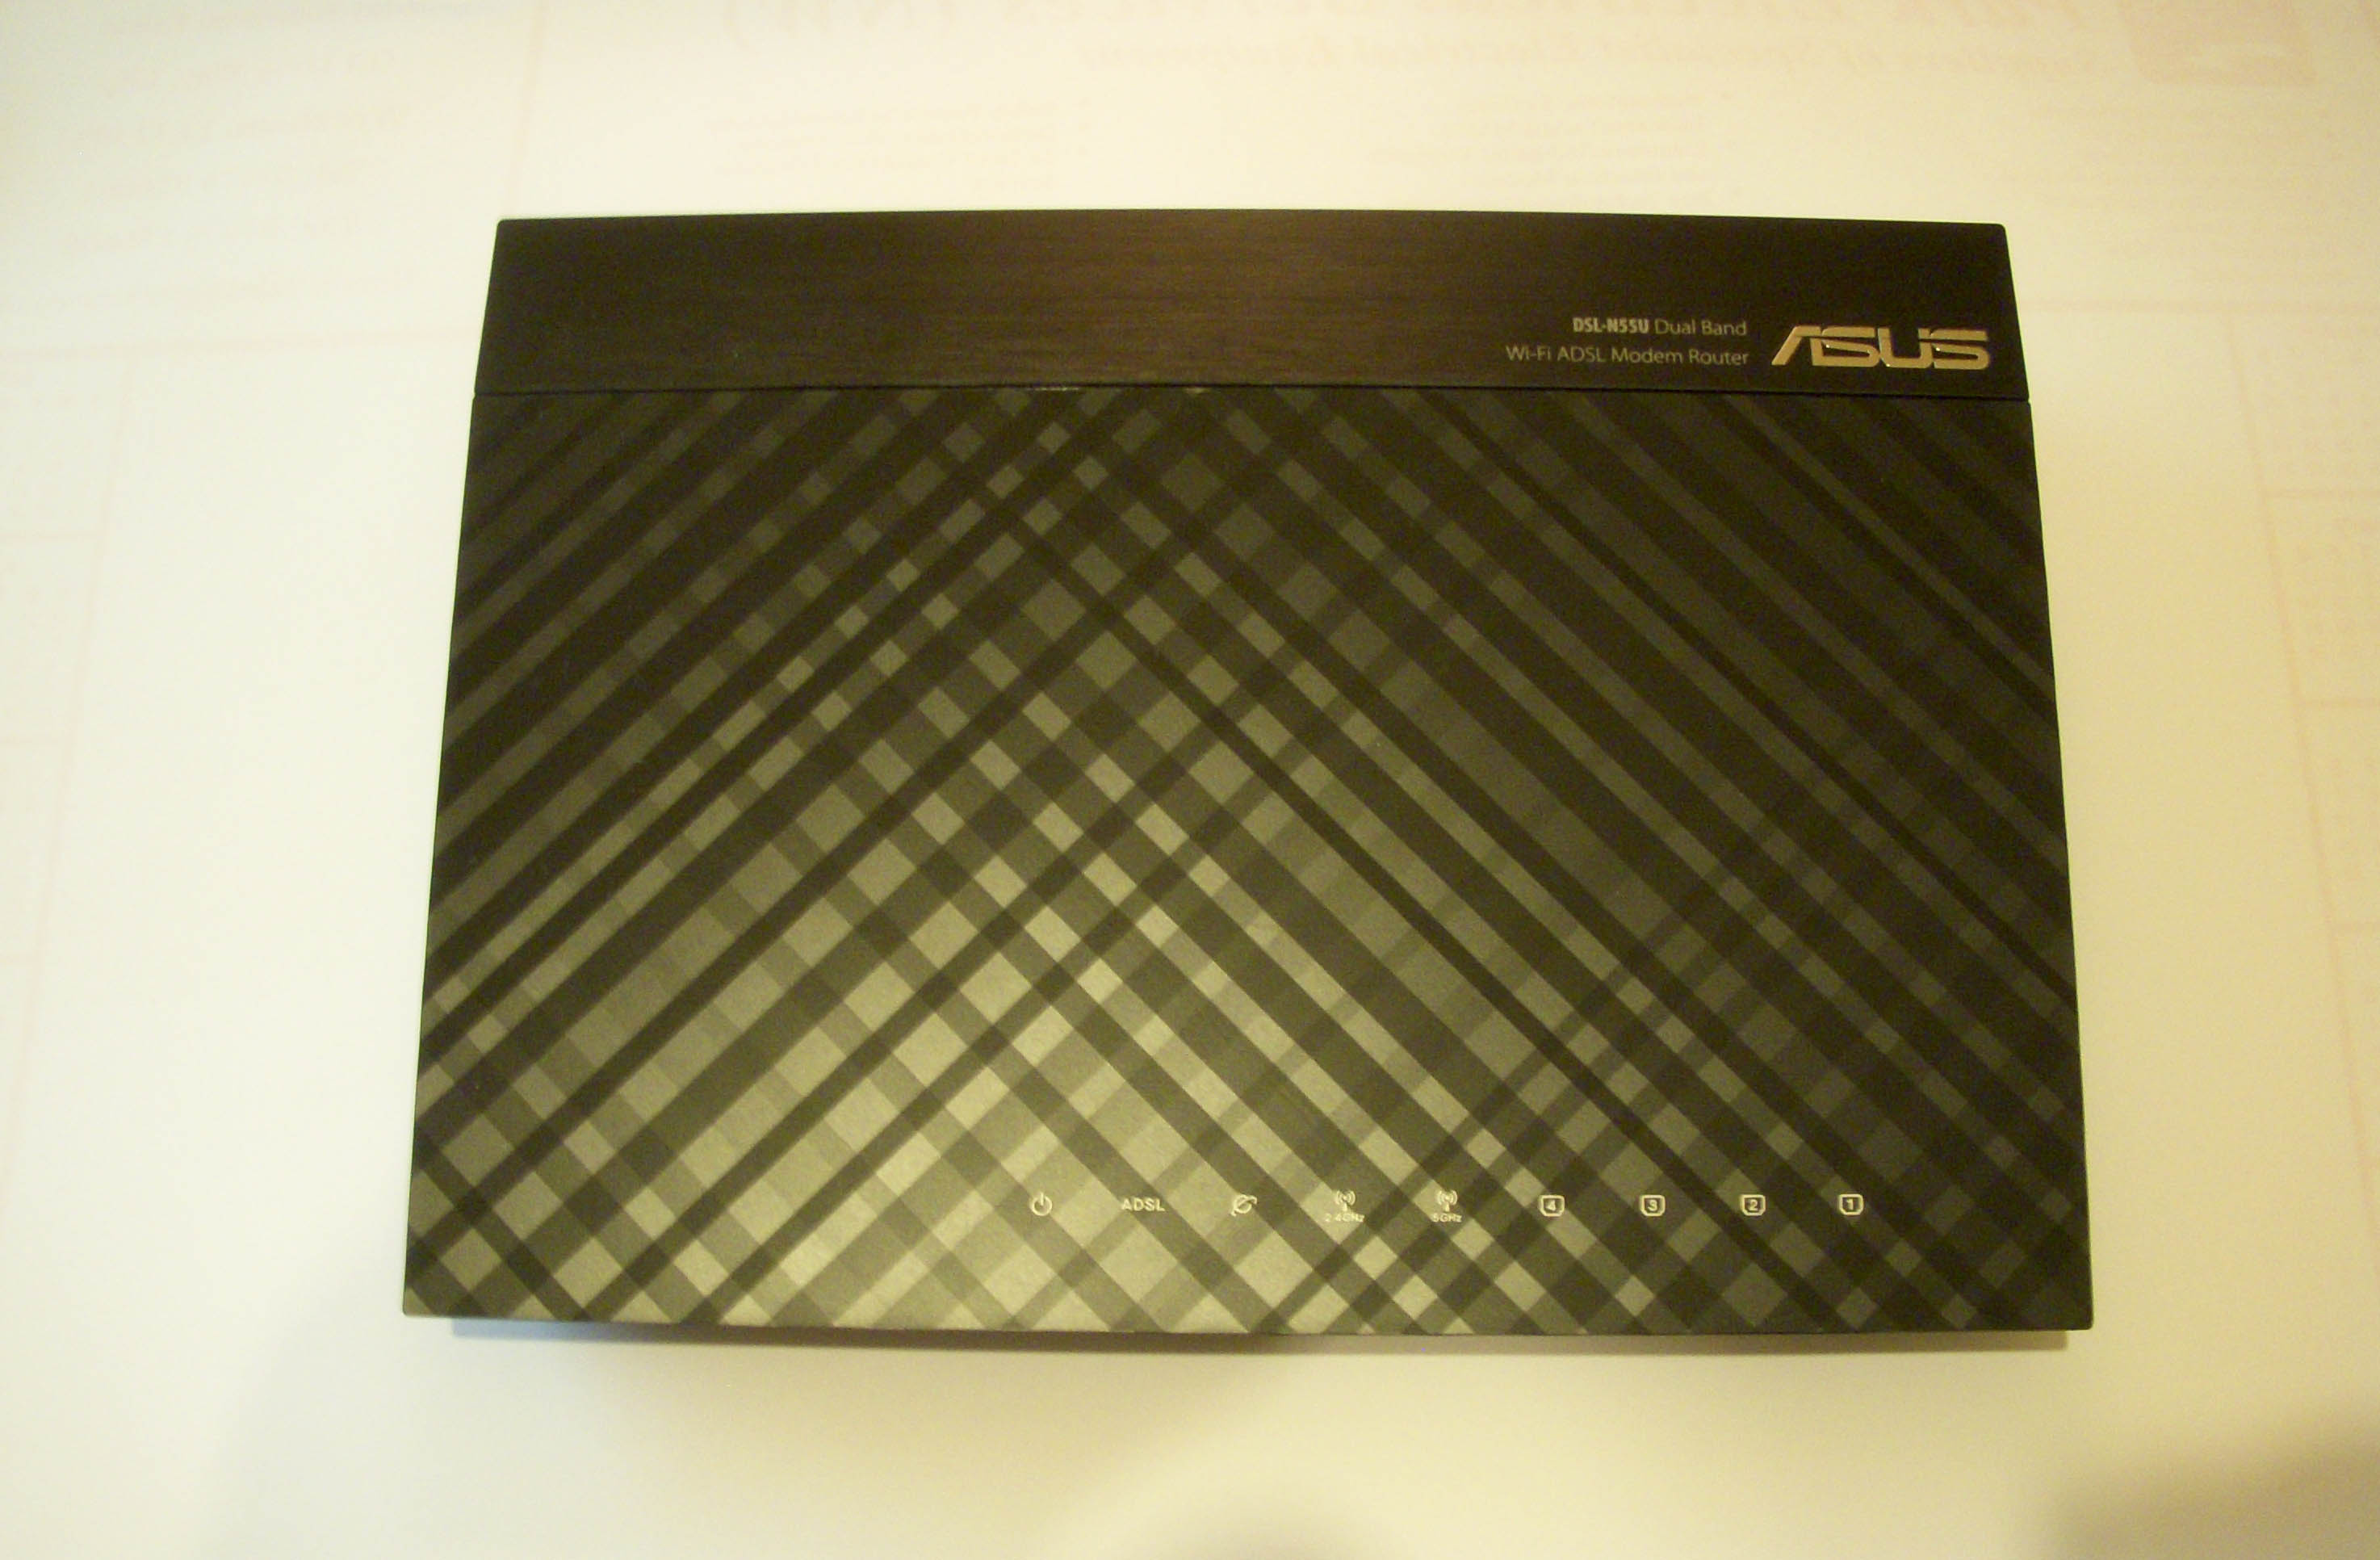 Asus DSL-N55U - Top View - Review